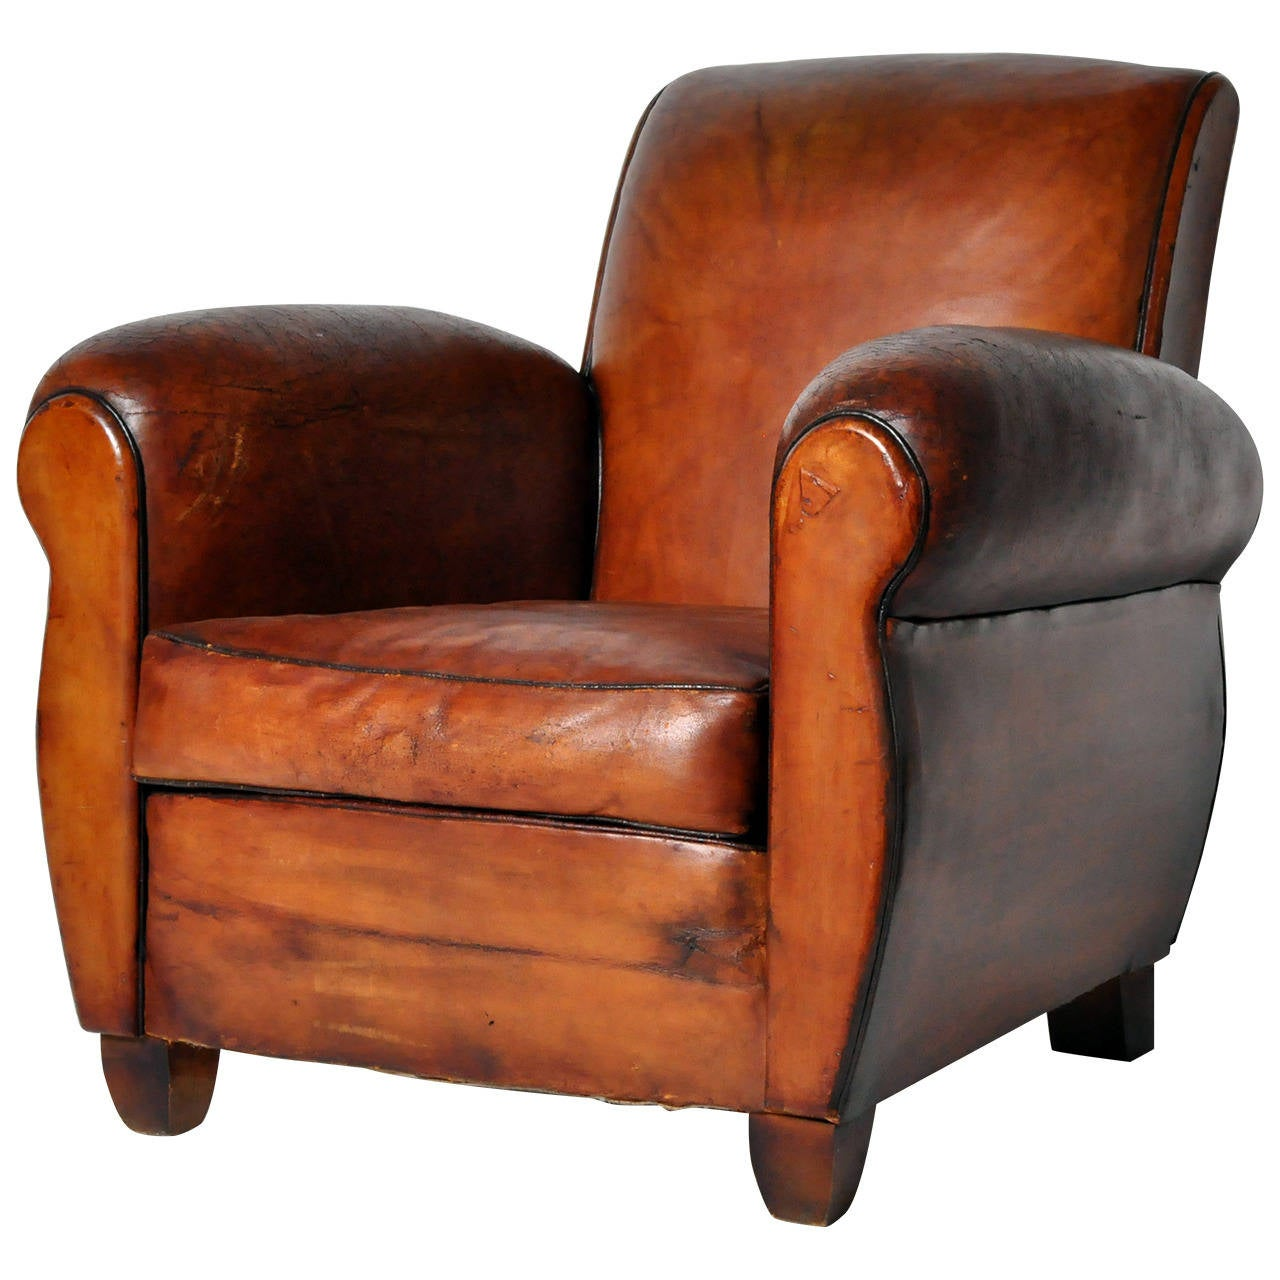 Wood Club Chair Vintage French Leather Club Chair